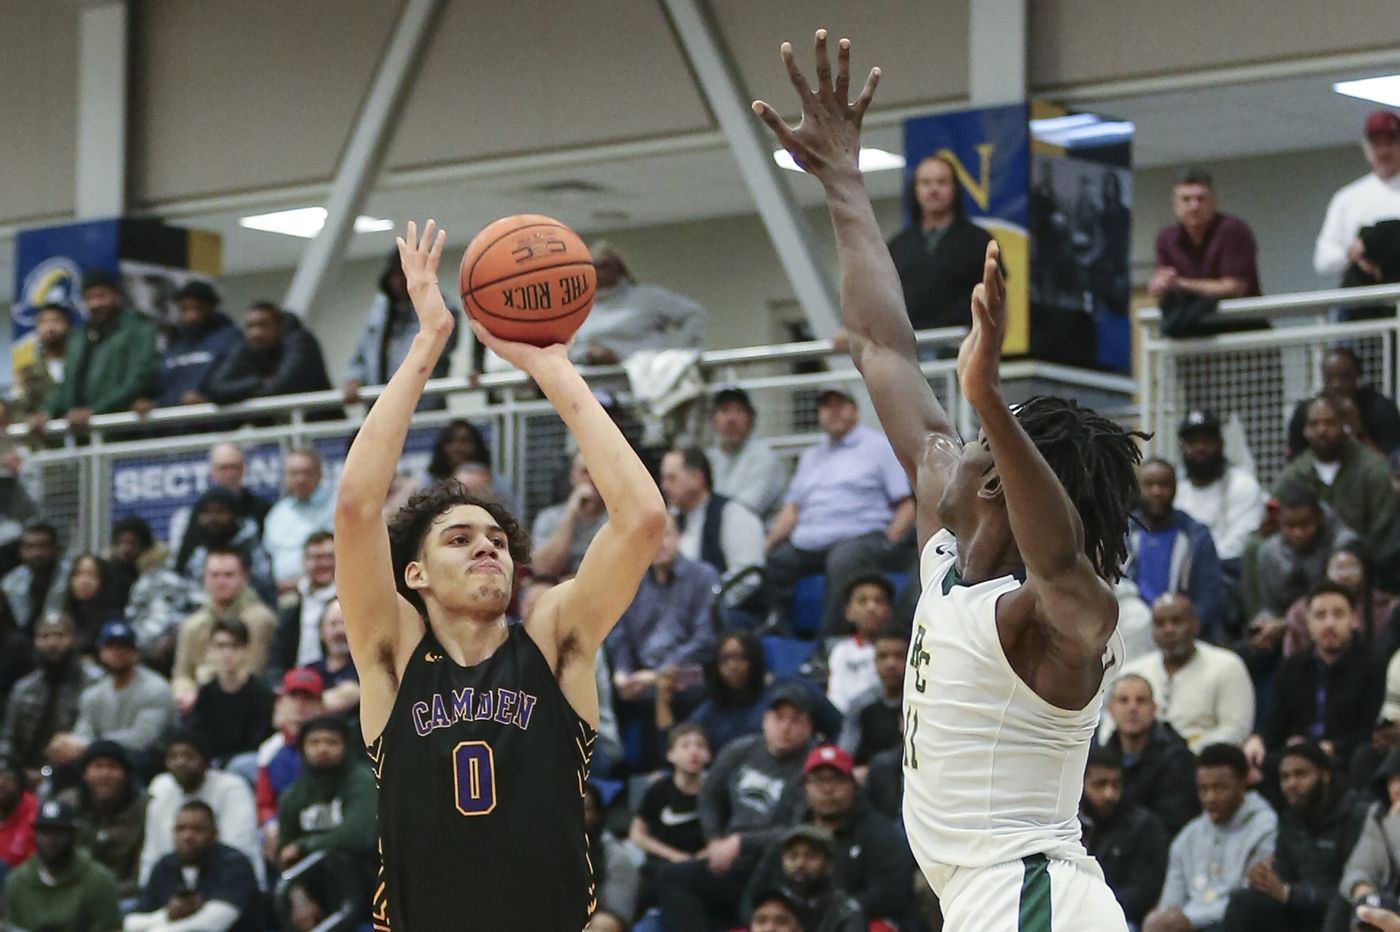 South Jersey Basketball Rankings: Top teams set sights on state titles